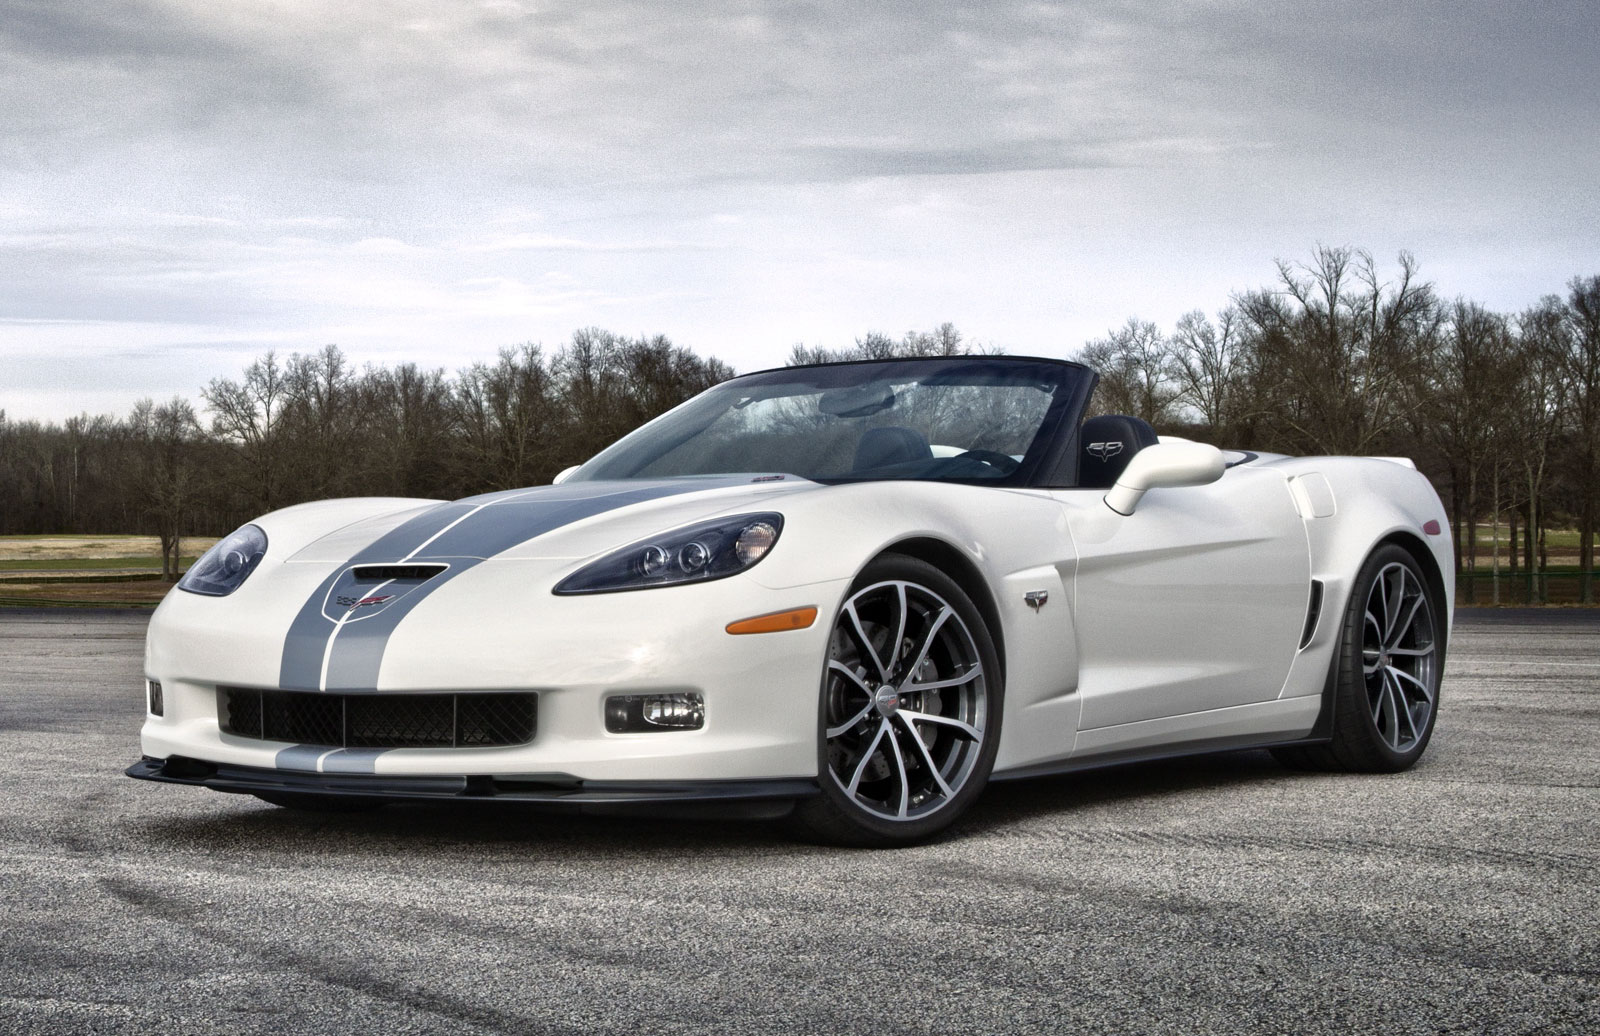 2019 Chevrolet Corvette 427 Convertible photo - 6